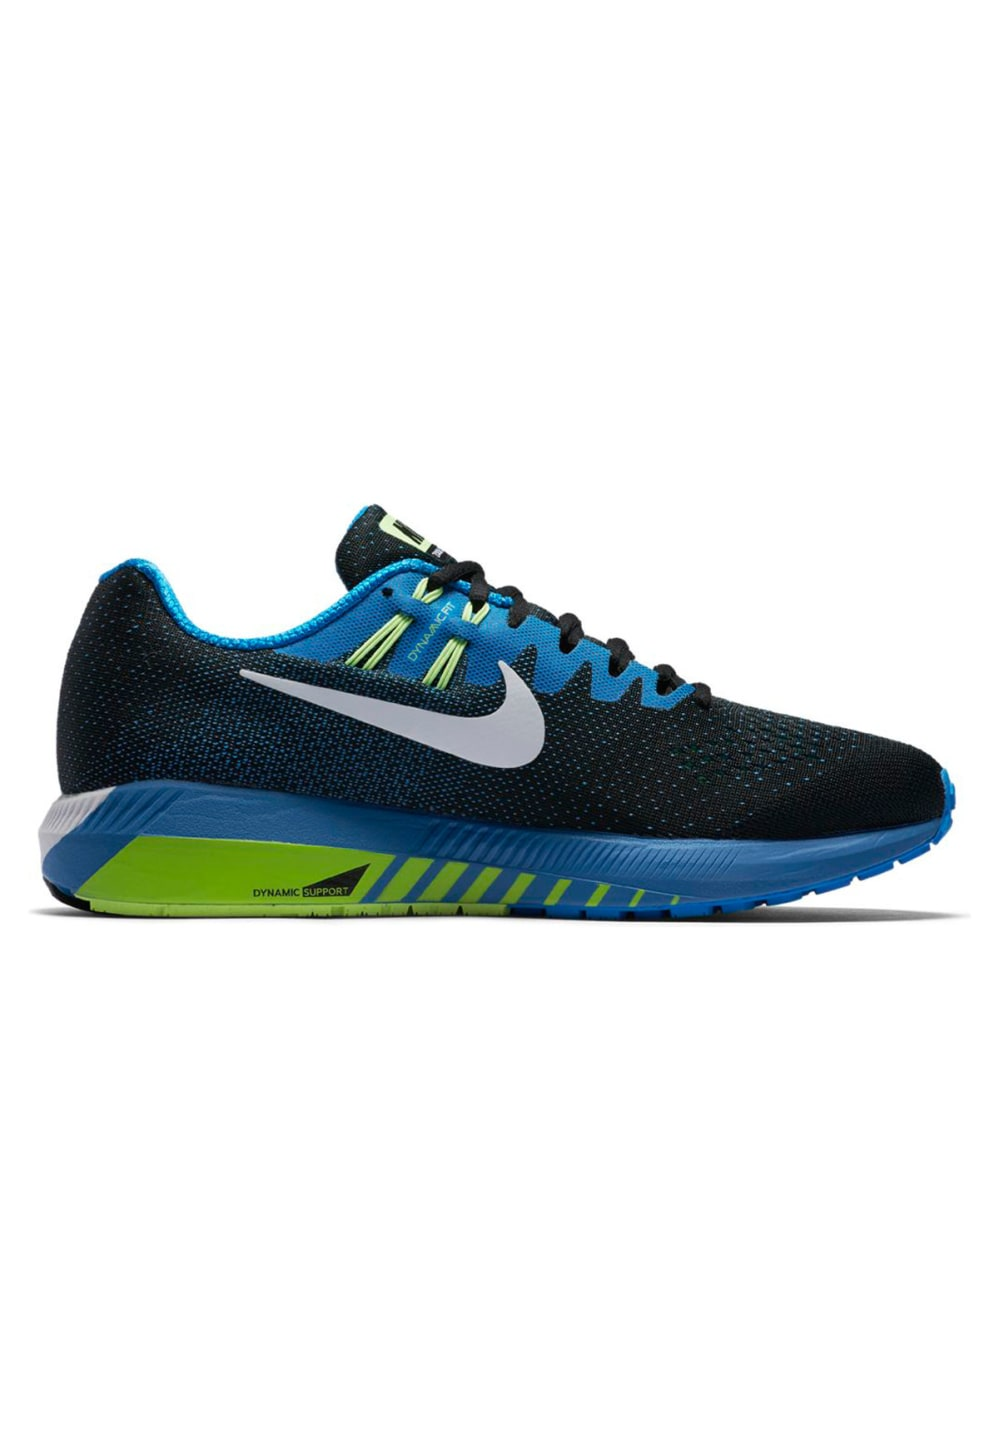 Nike Running Narrow Zoom Structure Homme Air Pour Chaussures 20 SqUGzpVjML